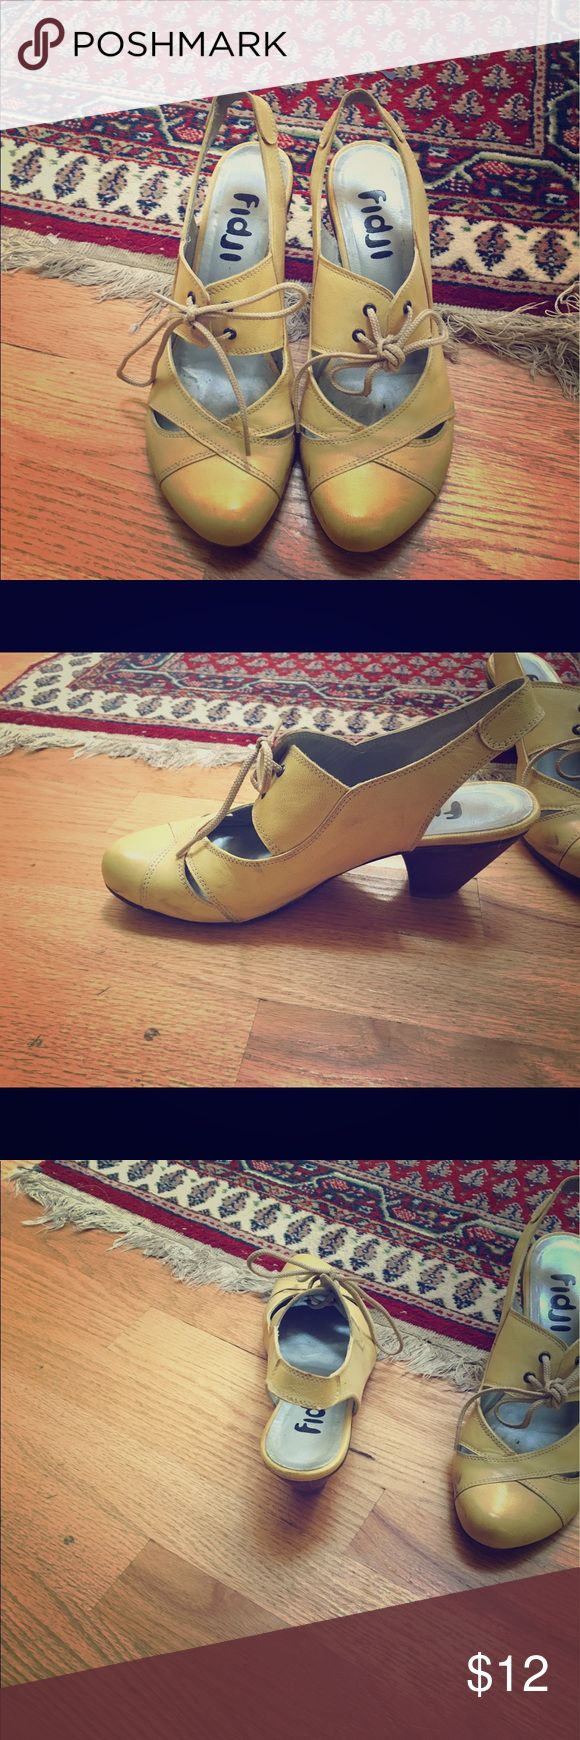 Vintage shoes! Vintage yellow small heeled shoes! Would look great with any summer outfit! Slight scuff on side, could be polished out. Contact me for more info fidji Shoes Heels